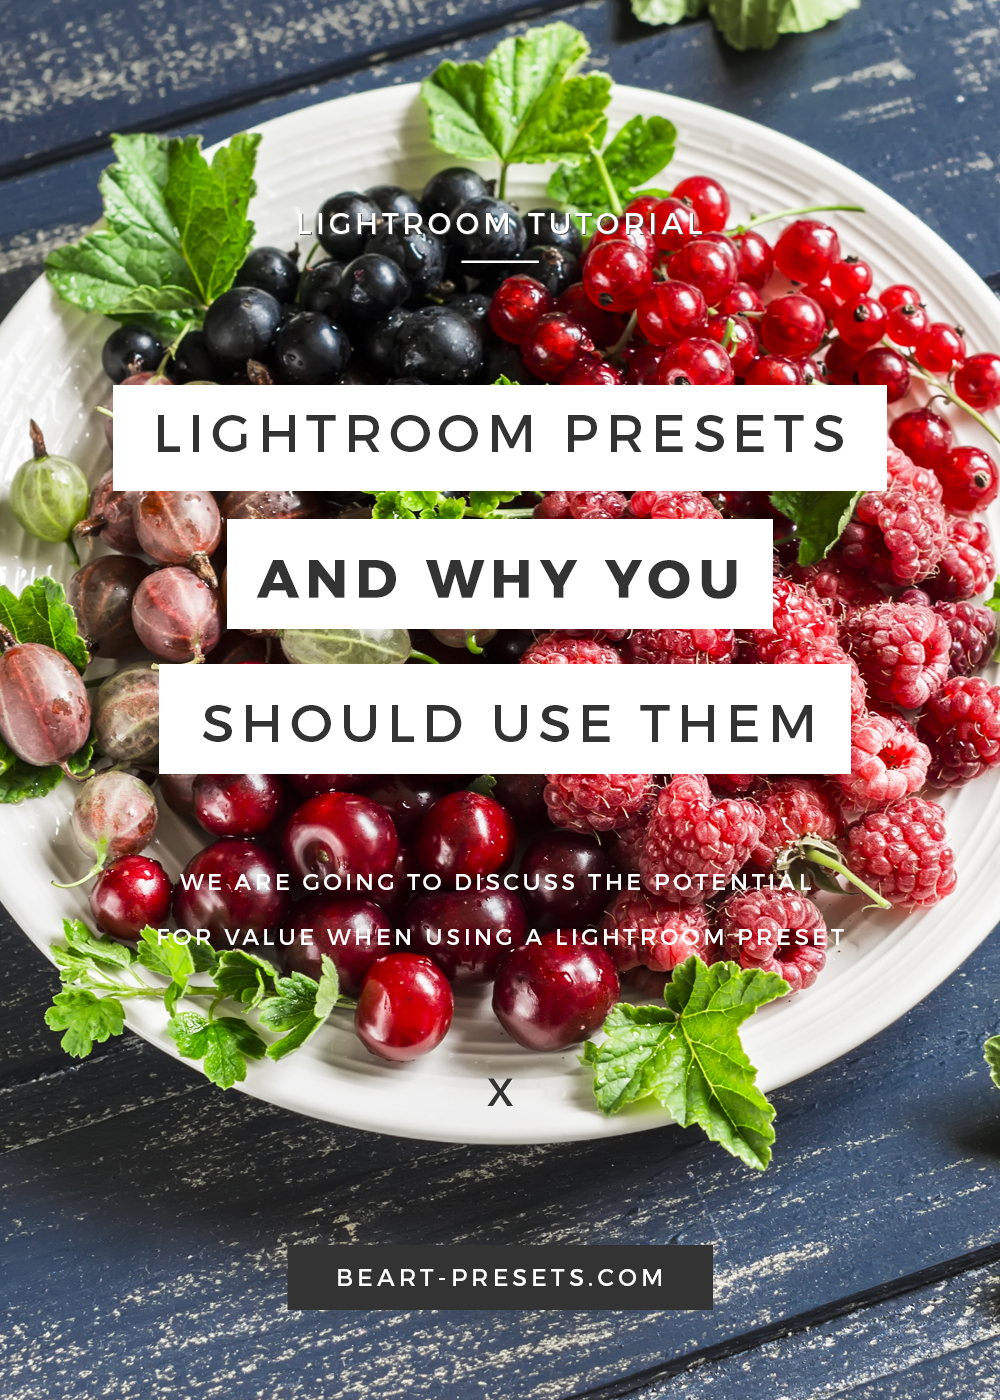 THE BEST REASONS TO USE LIGHTROOM PRESETS